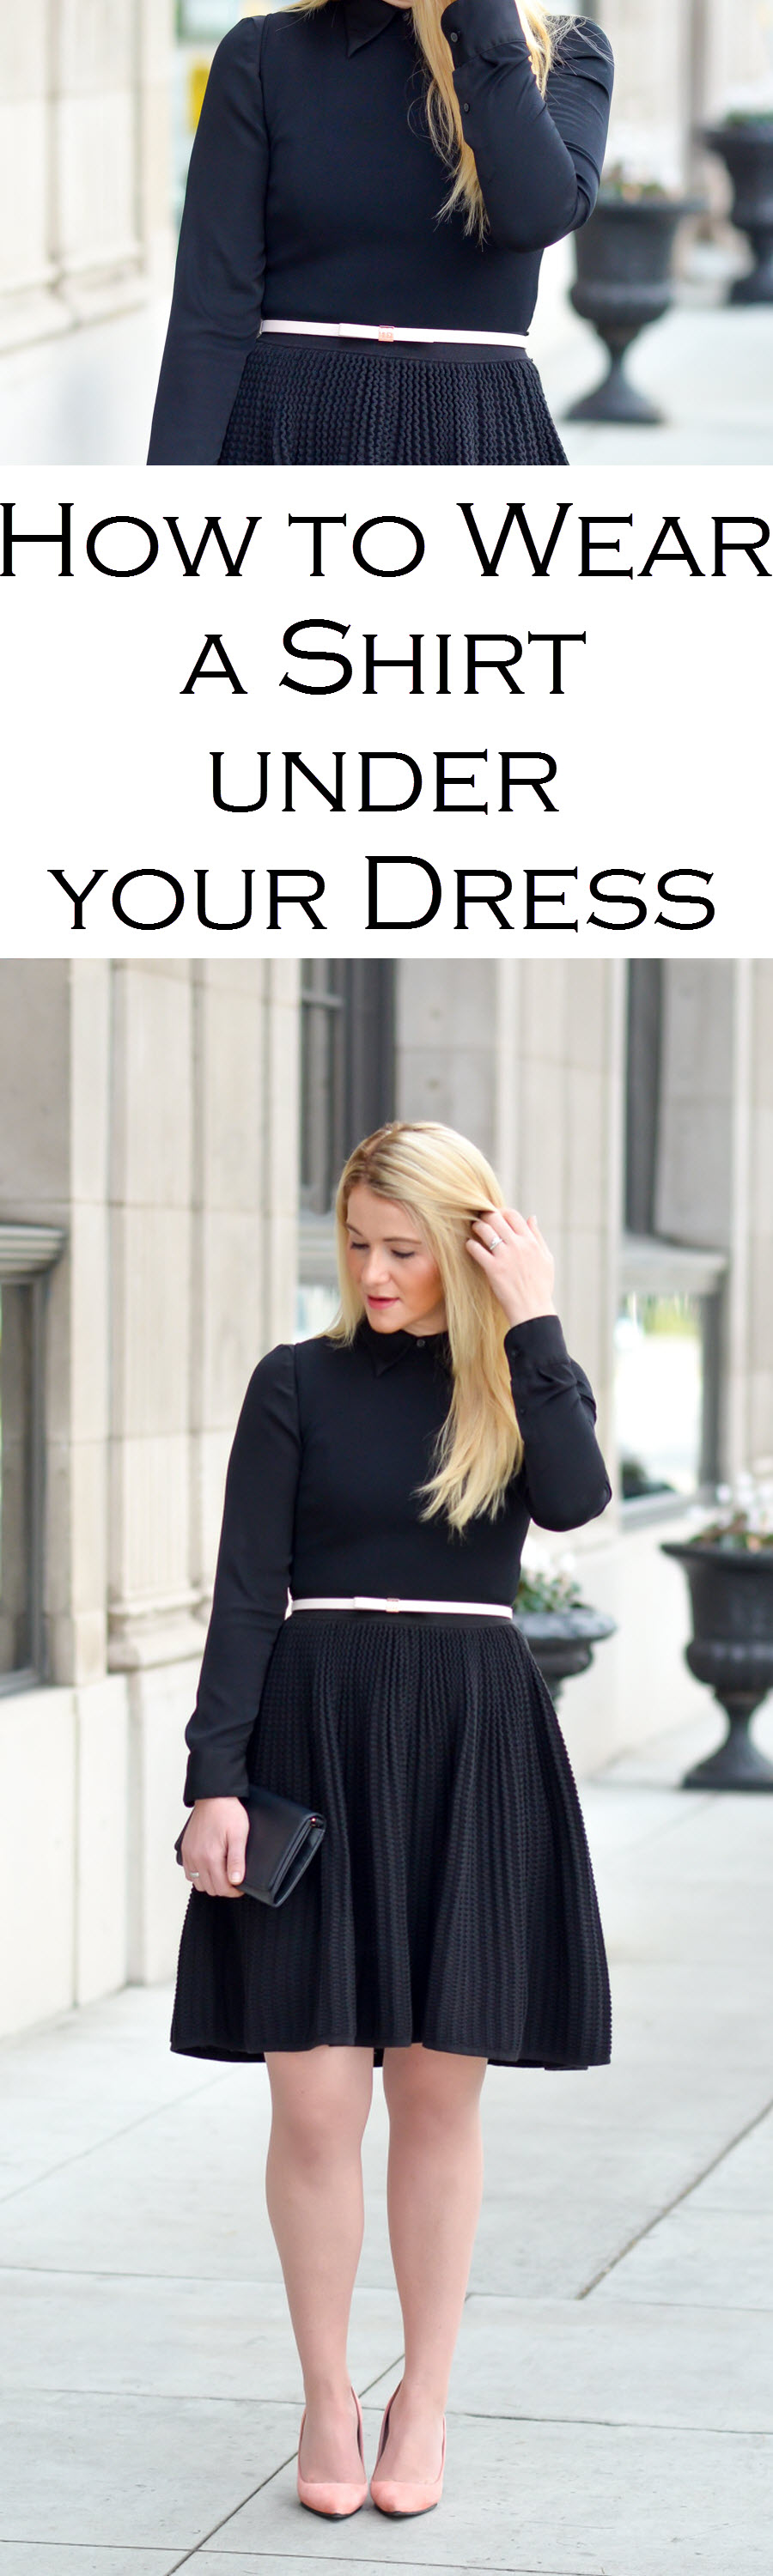 How to Layer Shirts under Dresses. Button Front Shirt Under Black Fit and Flare Dress Chic Outfit